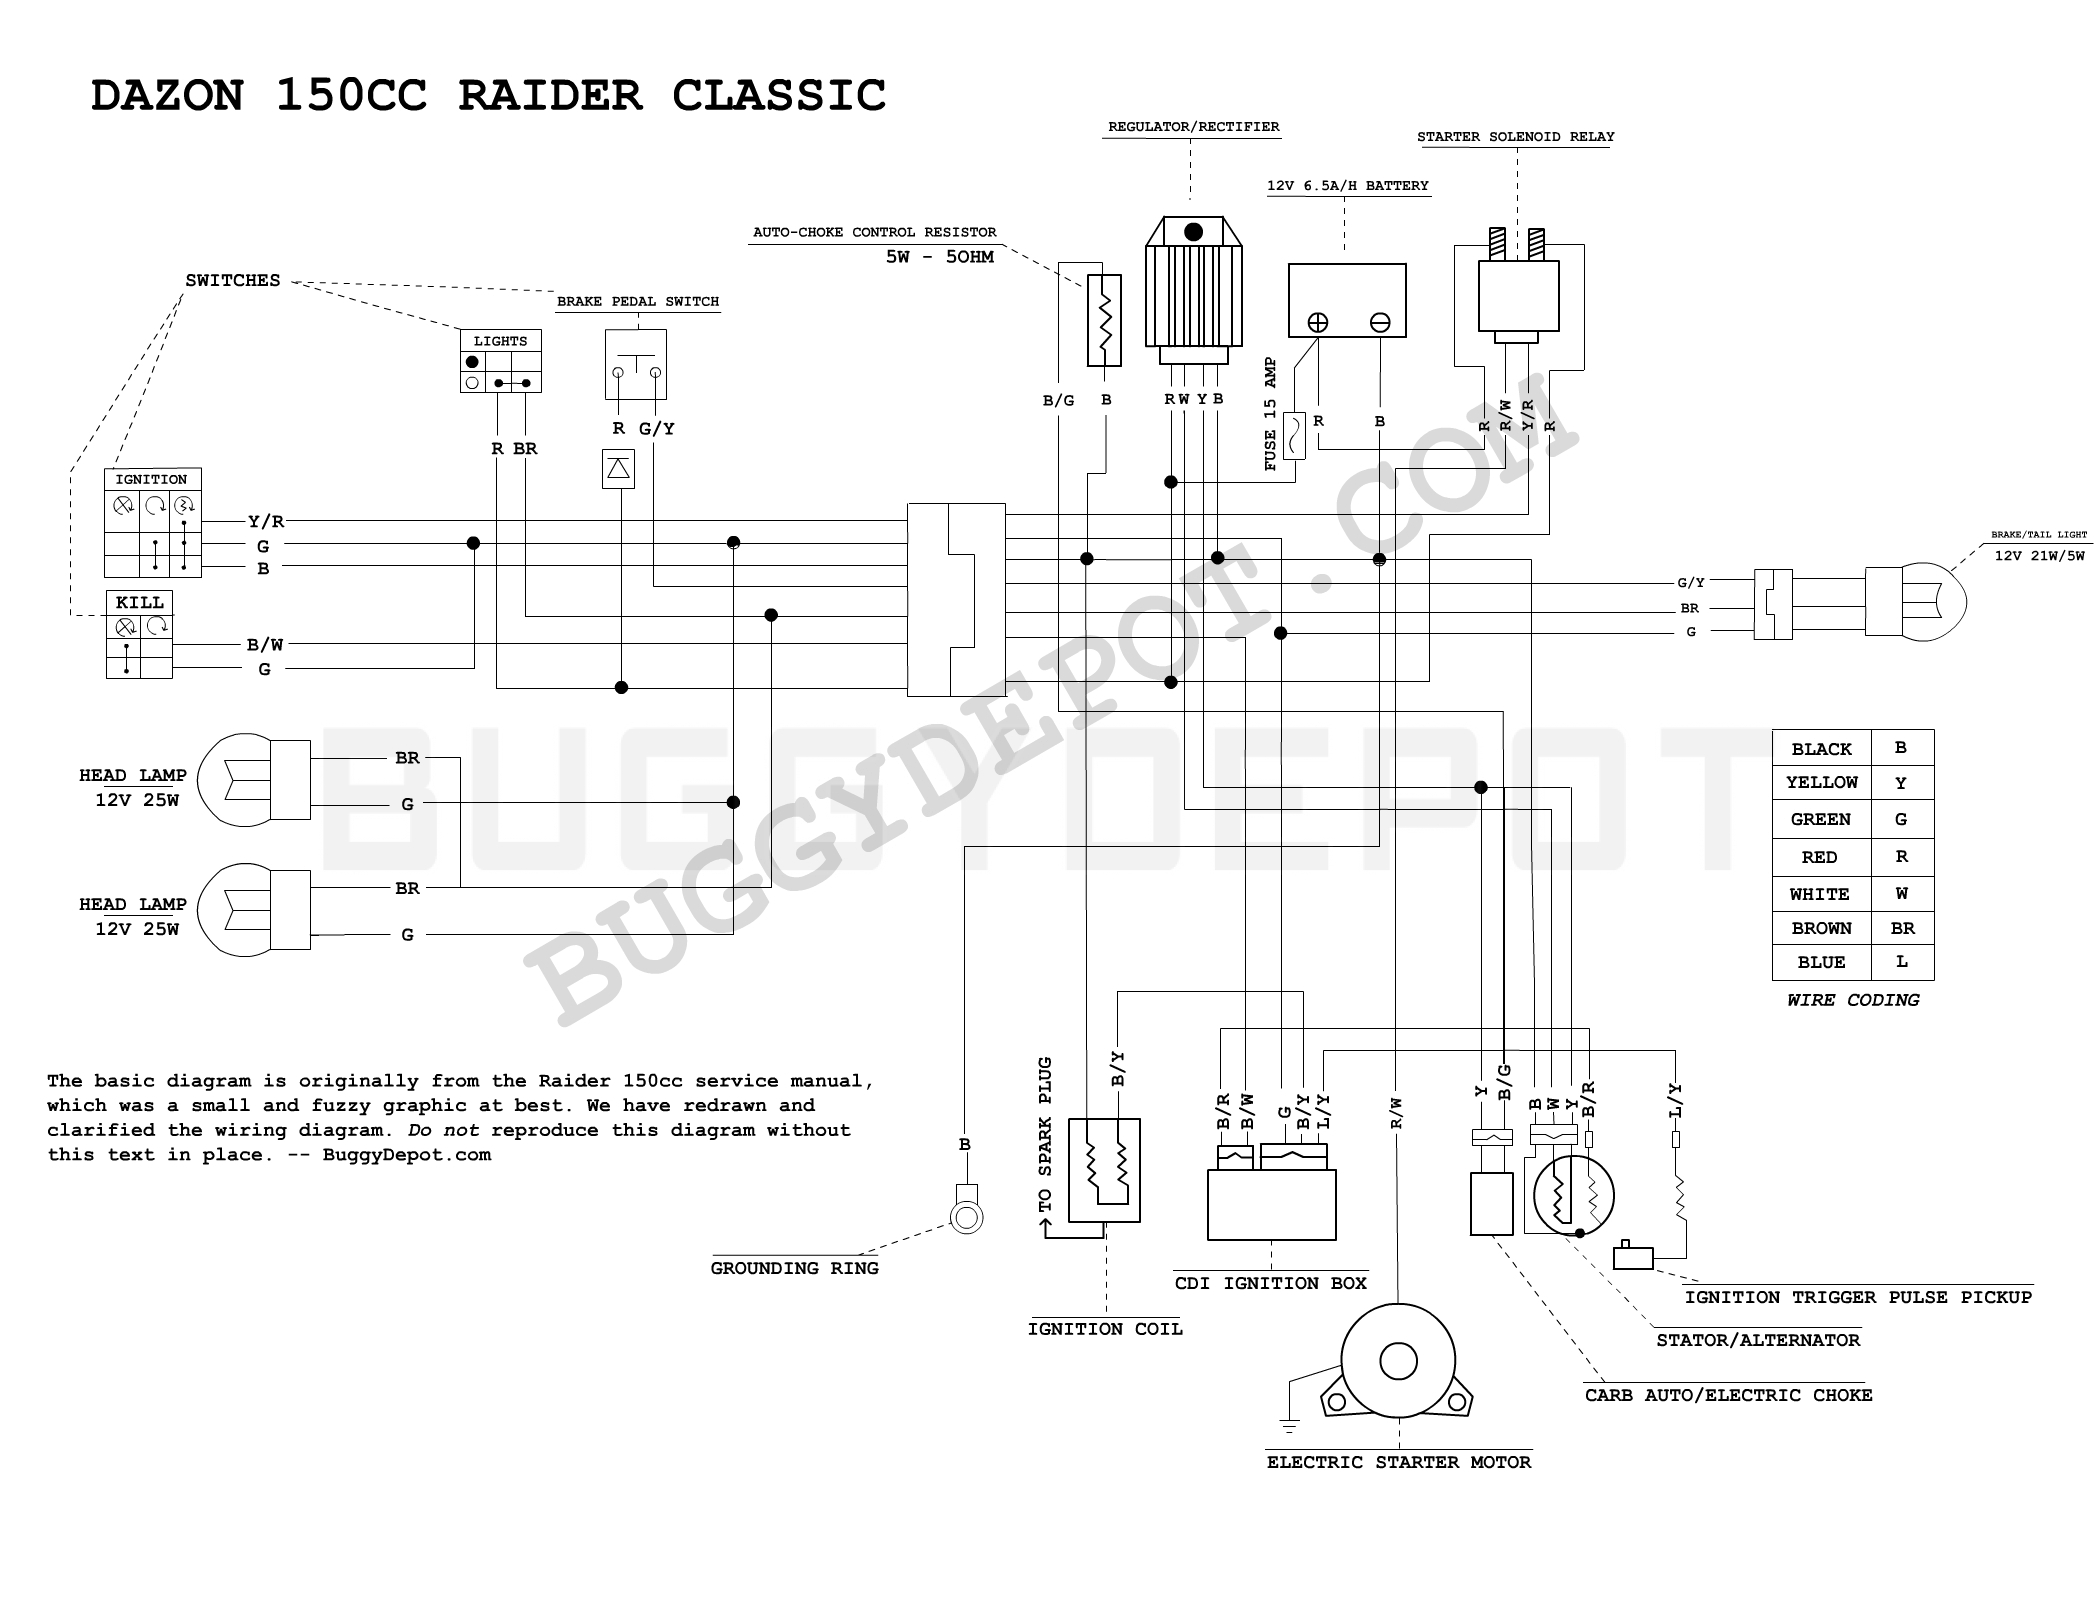 crossfire 150r wiring diagram buggy depot technical center Tomberlin Crossfire Parts dazon raider classic wiring diagram